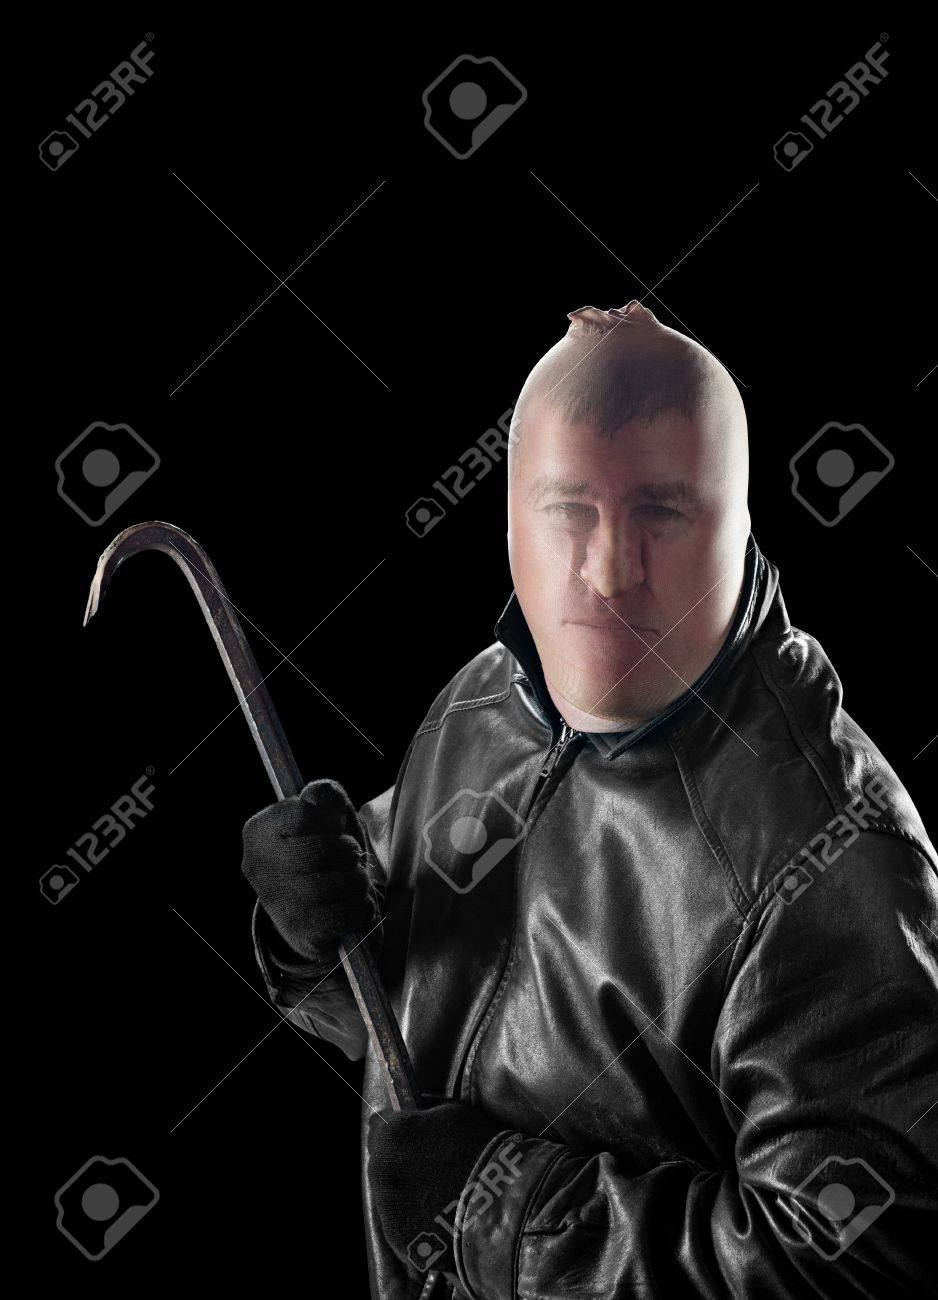 A criminal wearing pantyhose over his head to hide his identity carries a crowbar to commit a crime. Stock Photo - 16037317